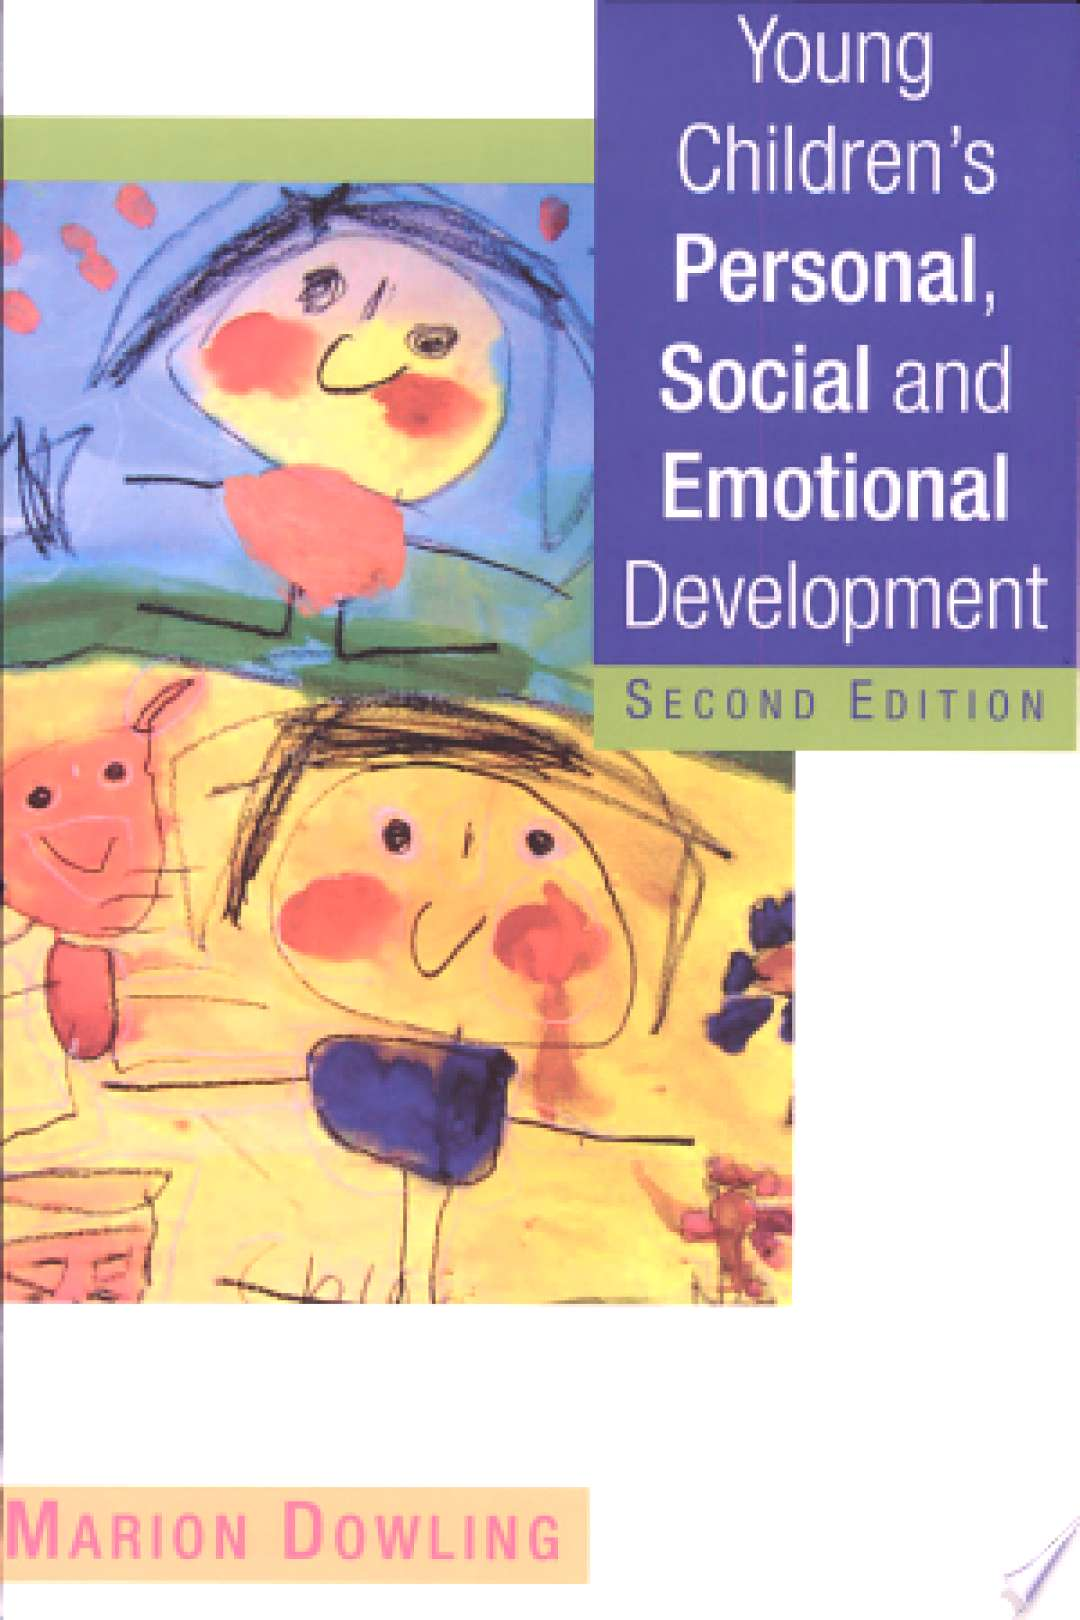 Children Development Stages Early Childhood | Childhood Development Stages children development sta